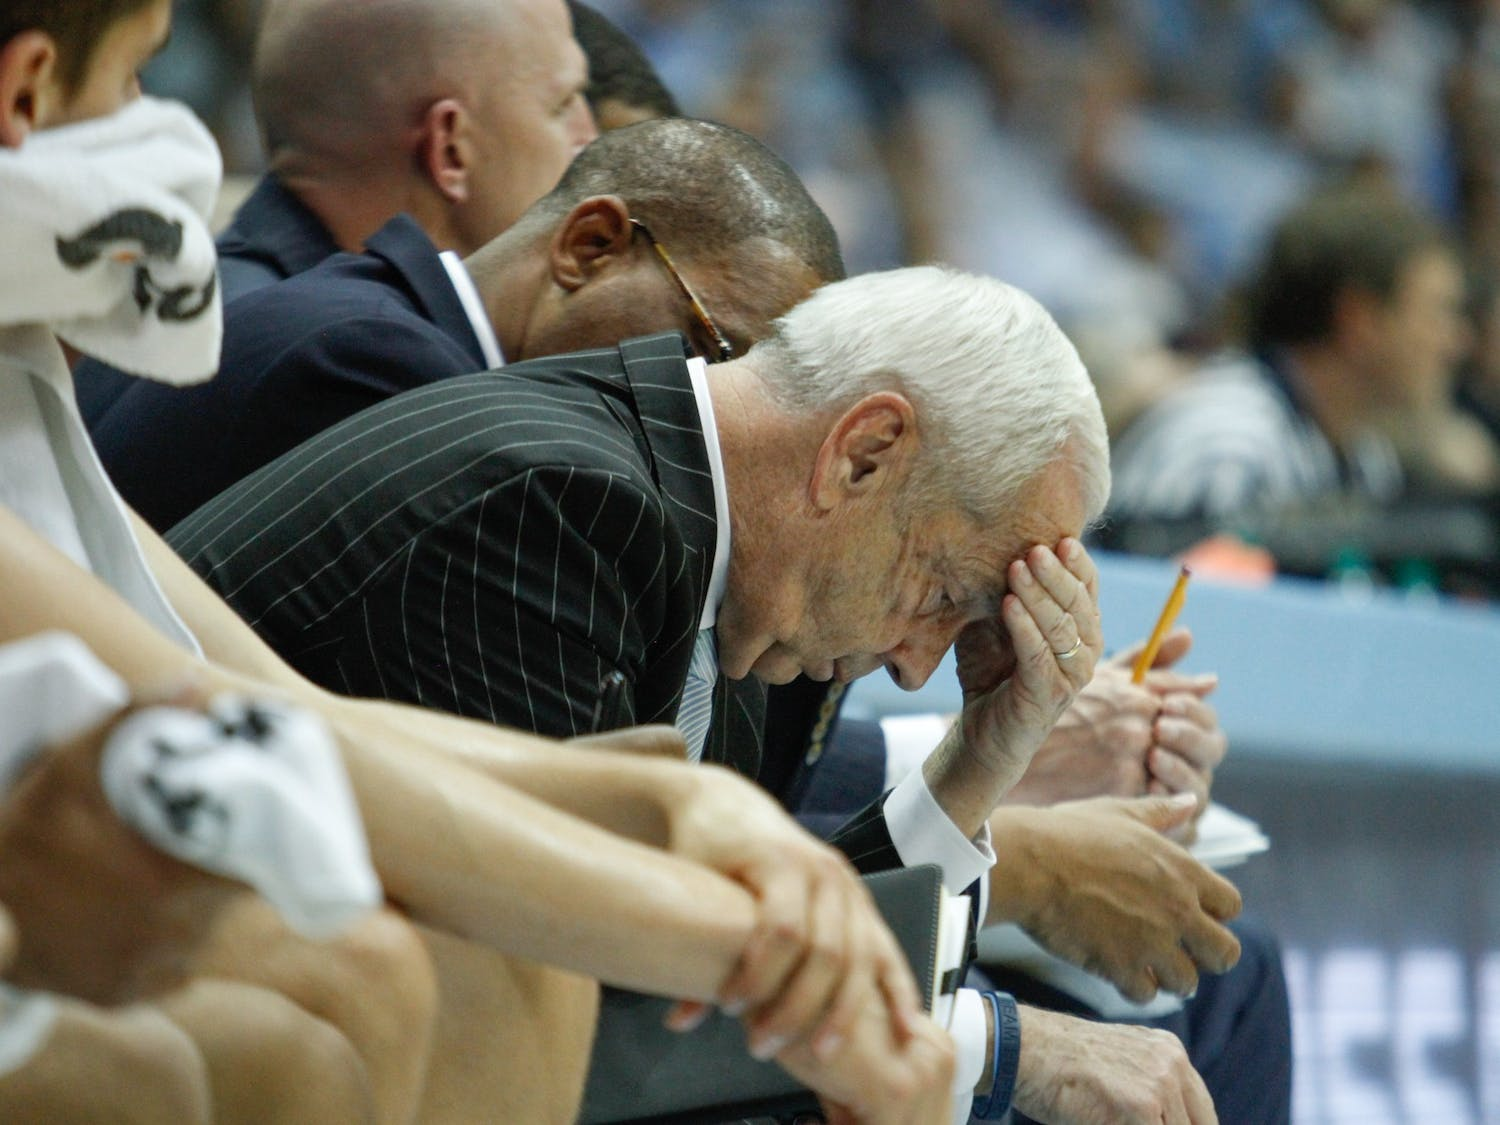 UNC head coach Roy Williams hangs his head near the end of the game against Ohio State in the Smith Center on Wednesday, Dec. 4, 2019. UNC lost to Ohio State 74-49.